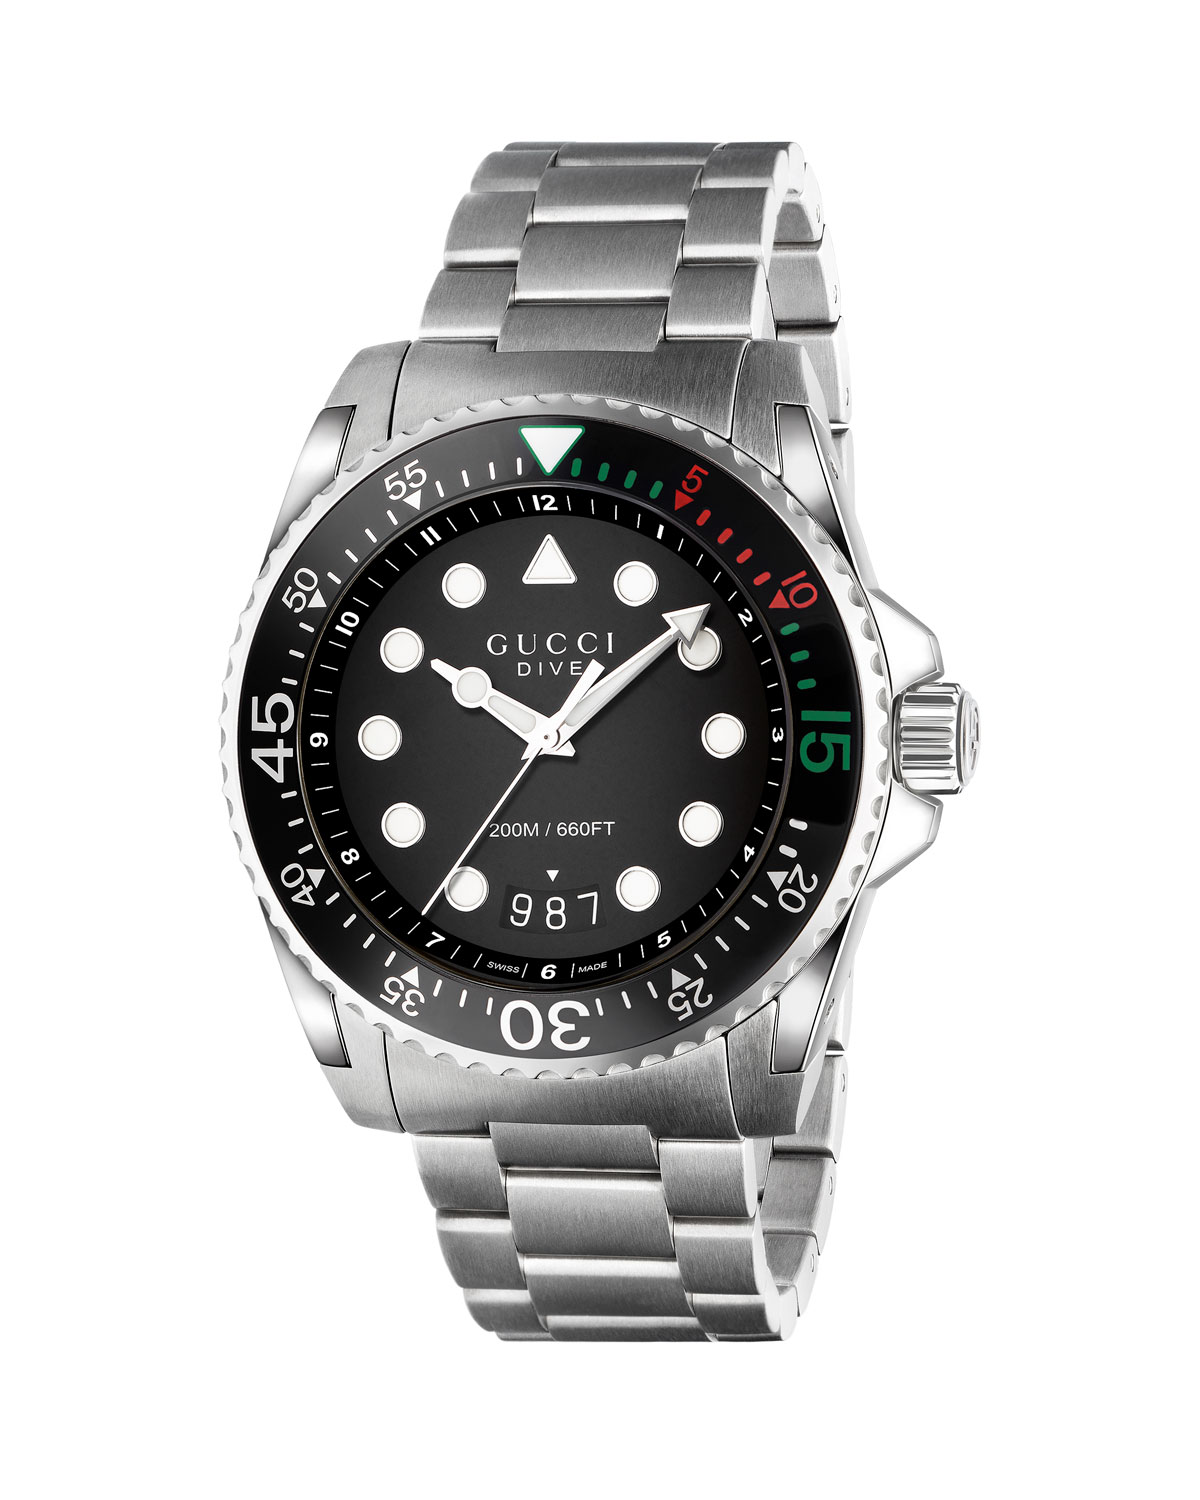 413bdeee95a Gucci 45mm Gucci Dive Stainless Steel Bracelet Watch